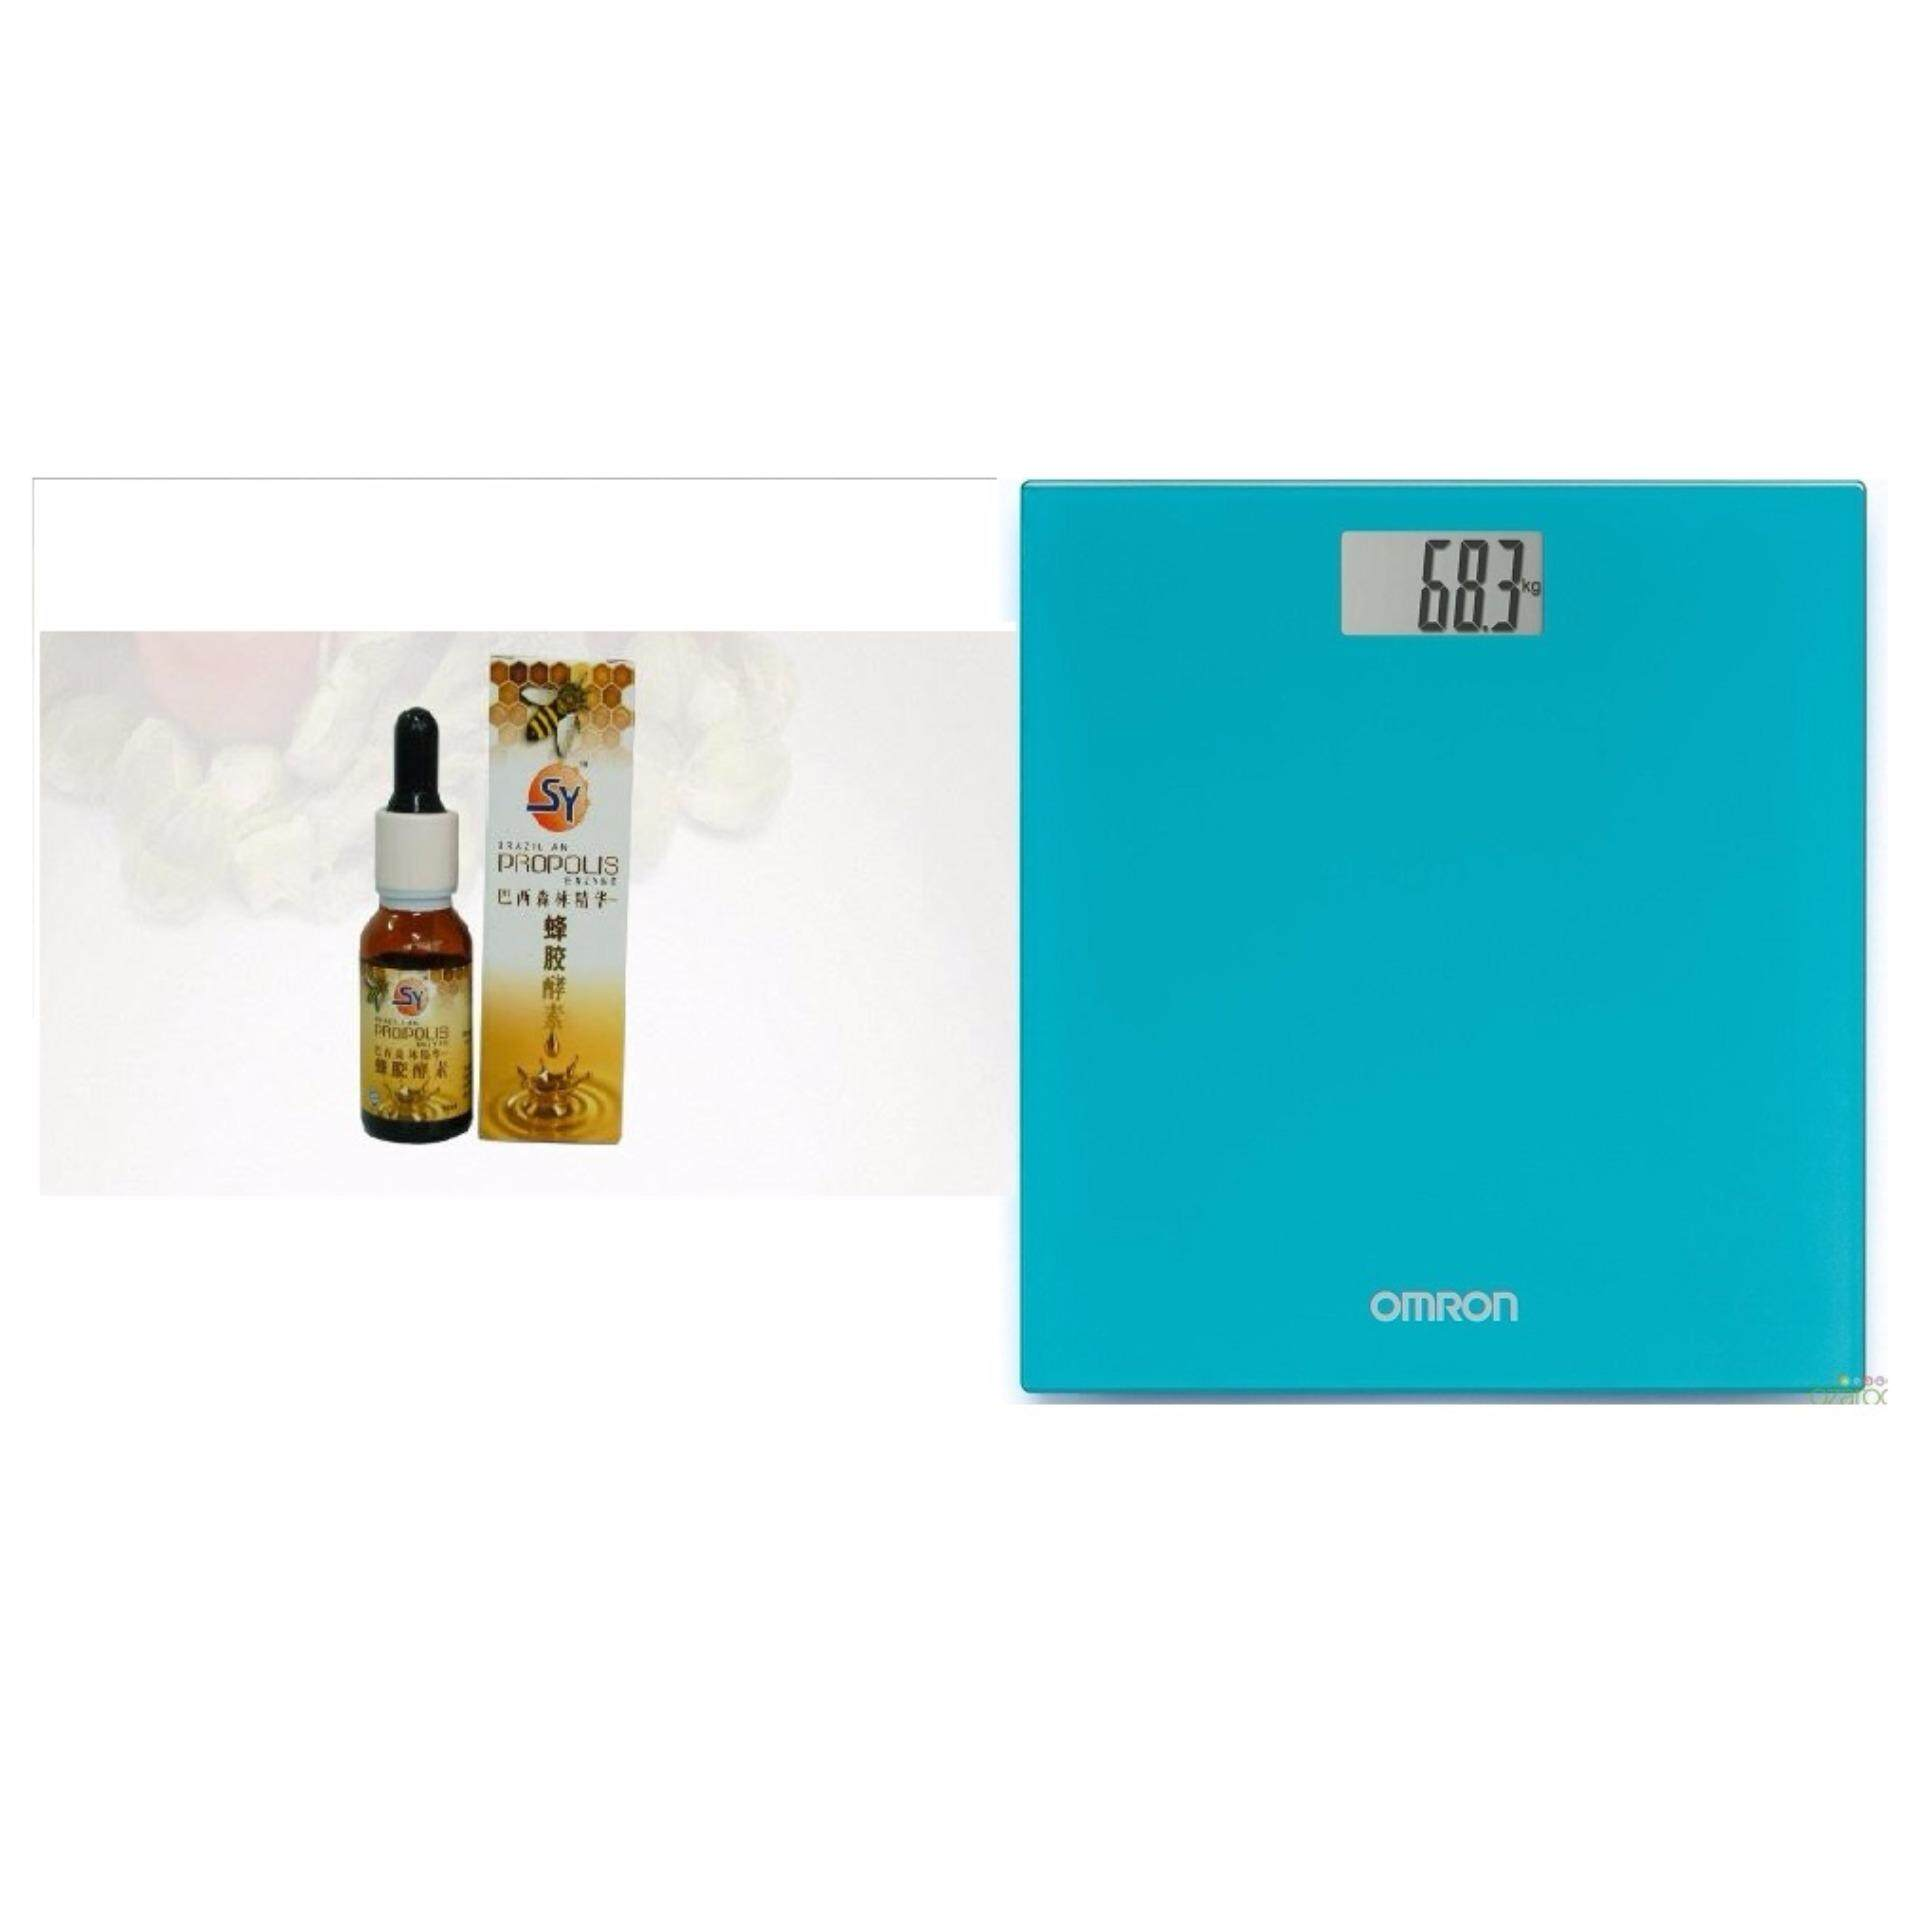 BRAZILIAN PROPOLIS ENZYME ORALLY 蜂胶酵素 15ml + Omron Digital Body Weighing Weight Scale HN289 Blue